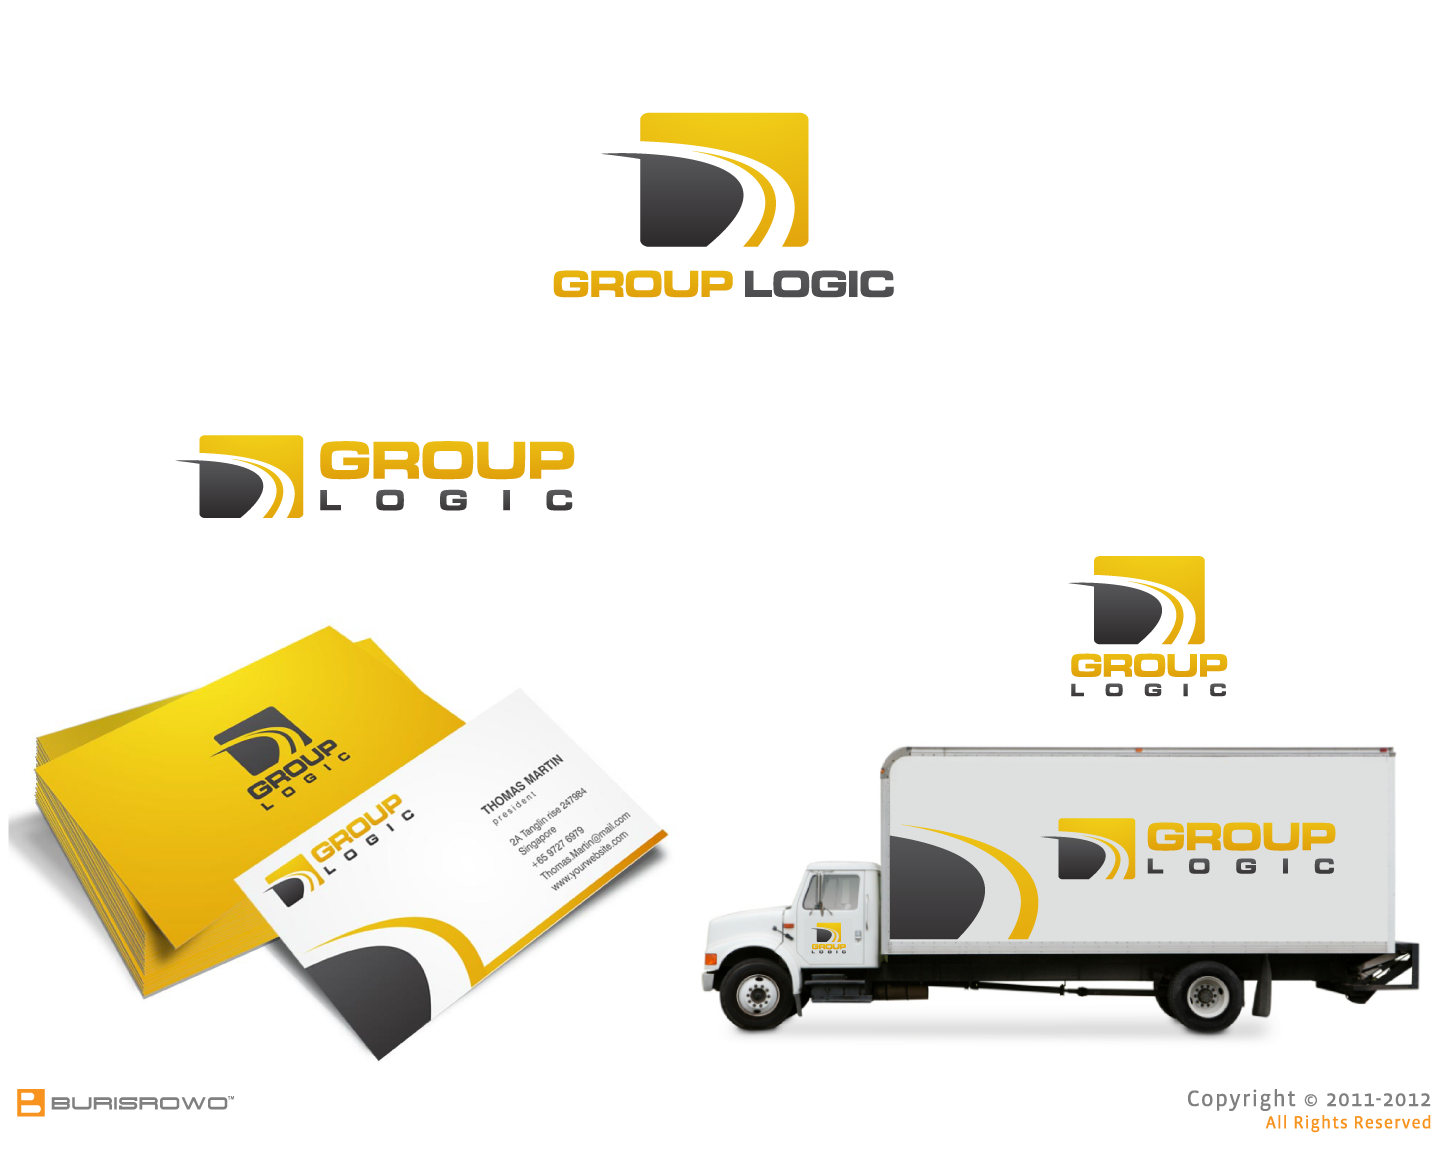 New logo wanted for Group Logic